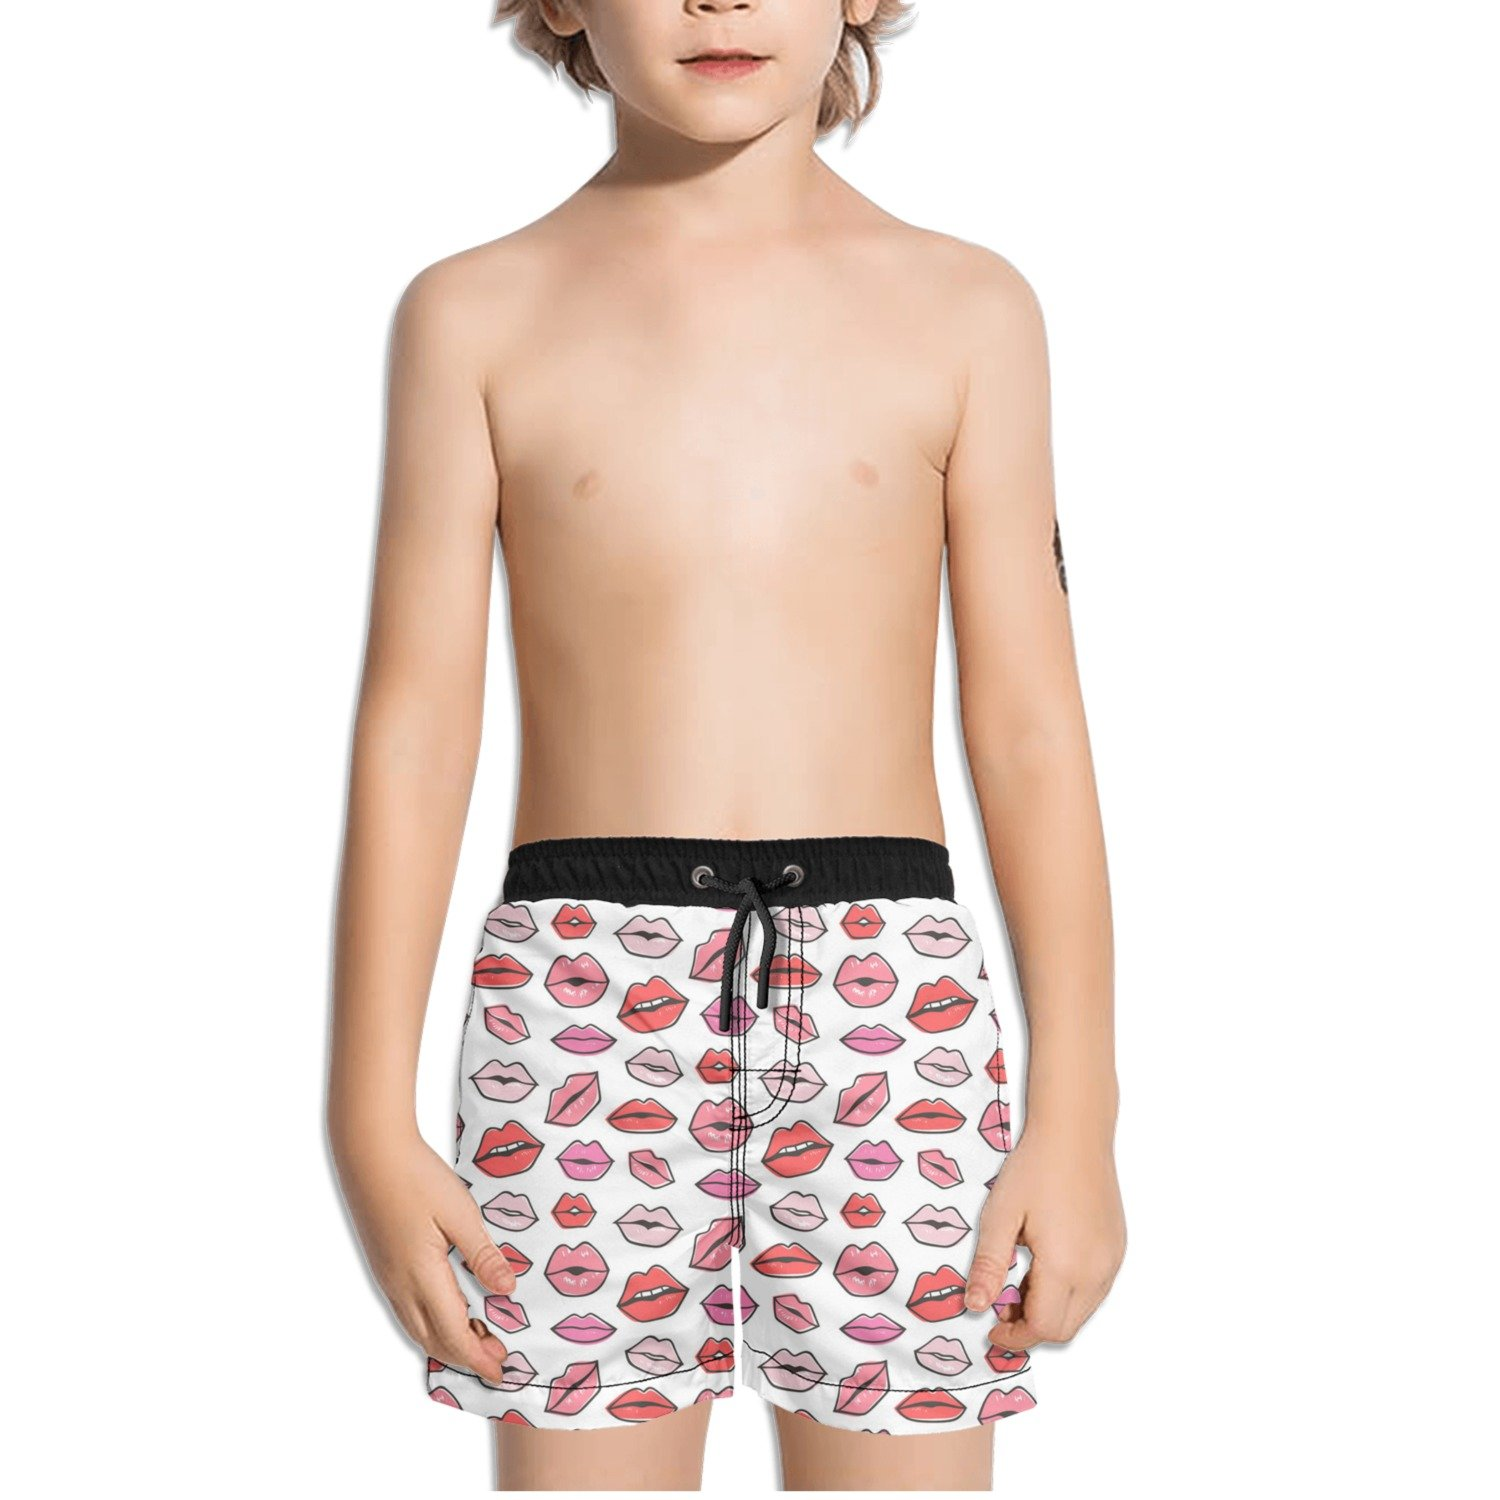 FullBo Lips Kiss Valentine's Day Little Boy's Short Swim Trunks Quick Dry Beach Shorts